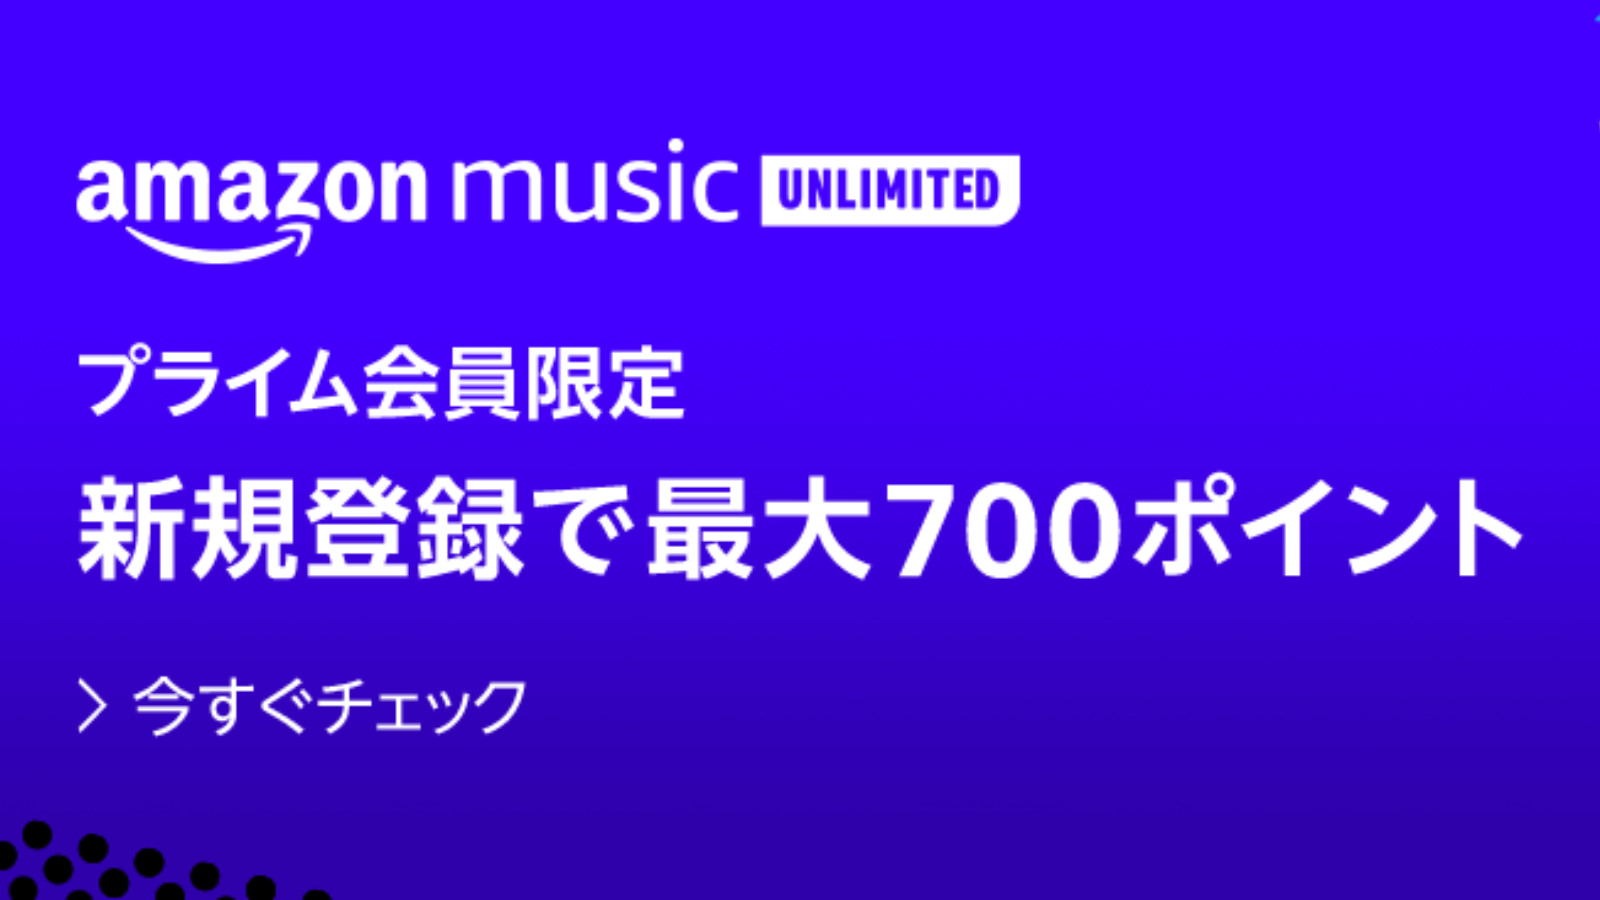 Amazon-Music-Unlimited-Pointback-campaign.jpg